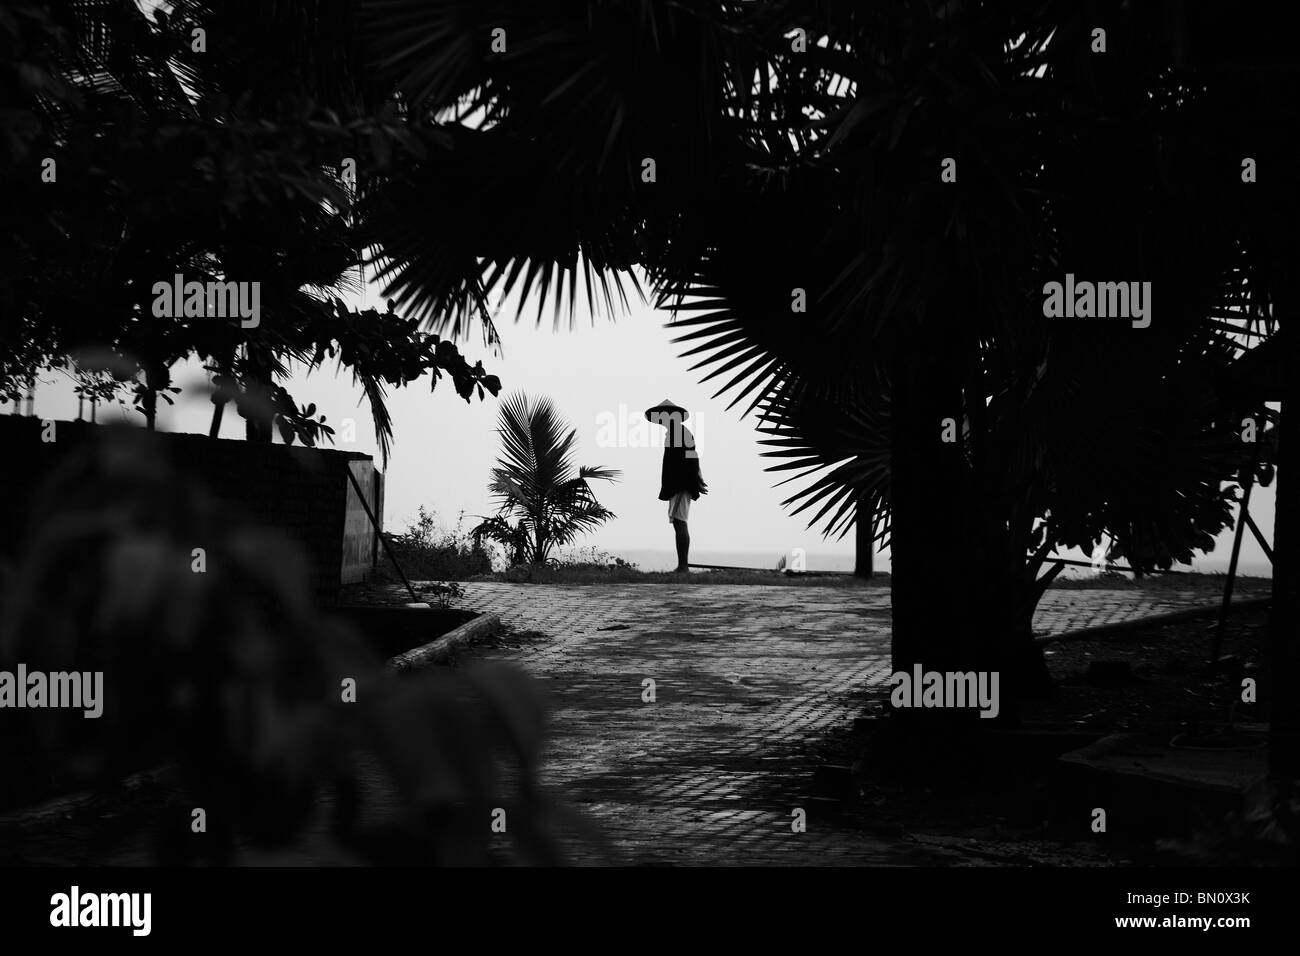 Silhouette of Asian man - Stock Image